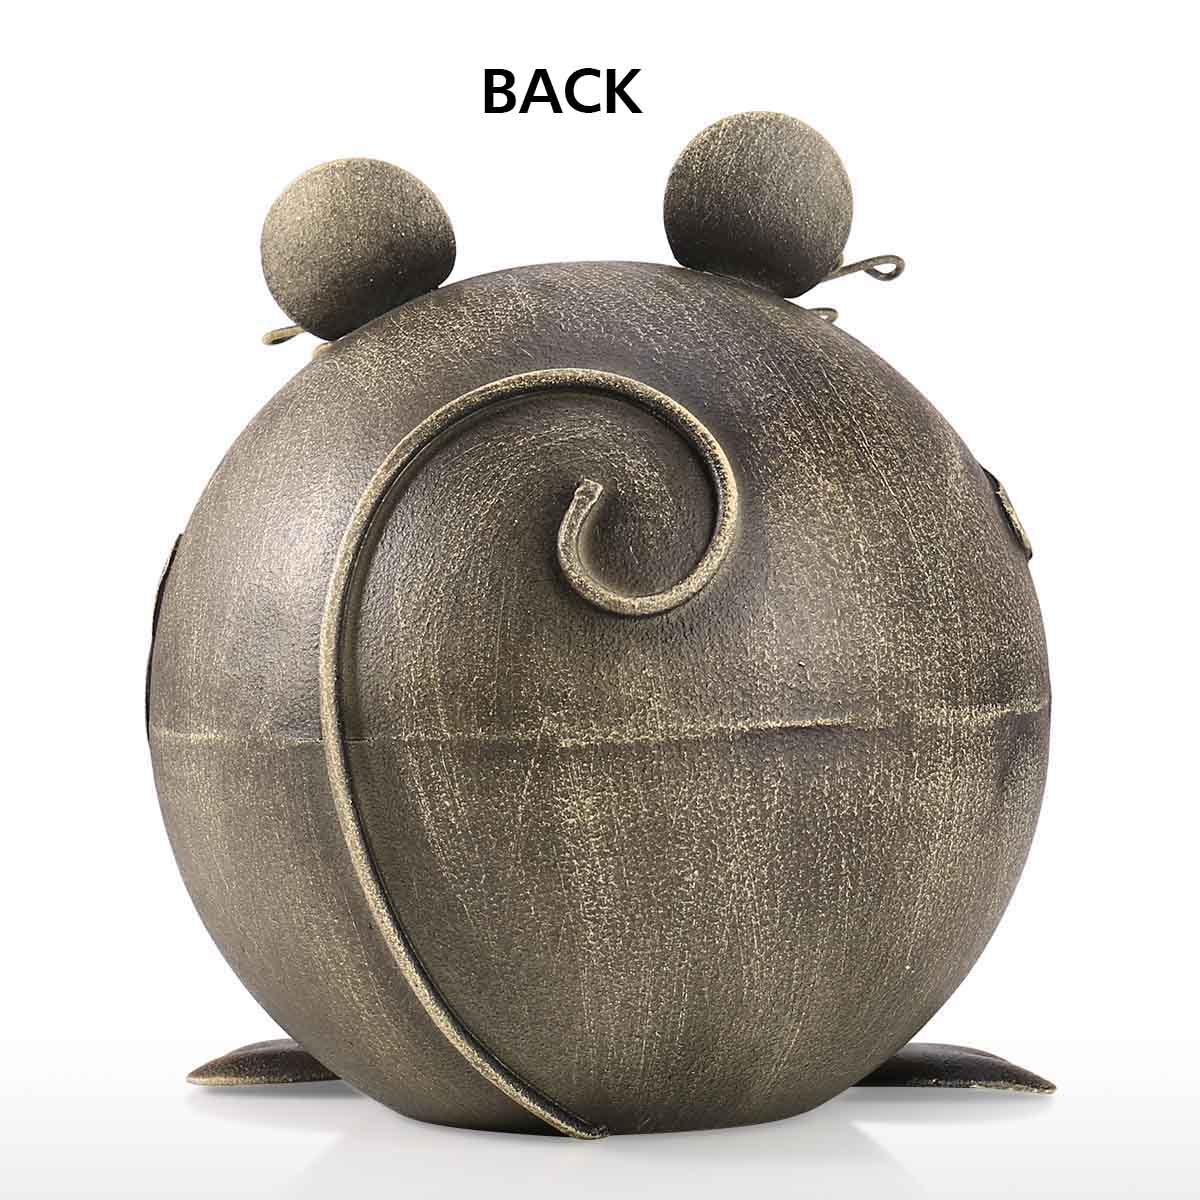 Tooarts best selling 2019 products Piggy Bank money box Money Saving coin Bank for Kids Coin Bank Decor Decorative Ornament